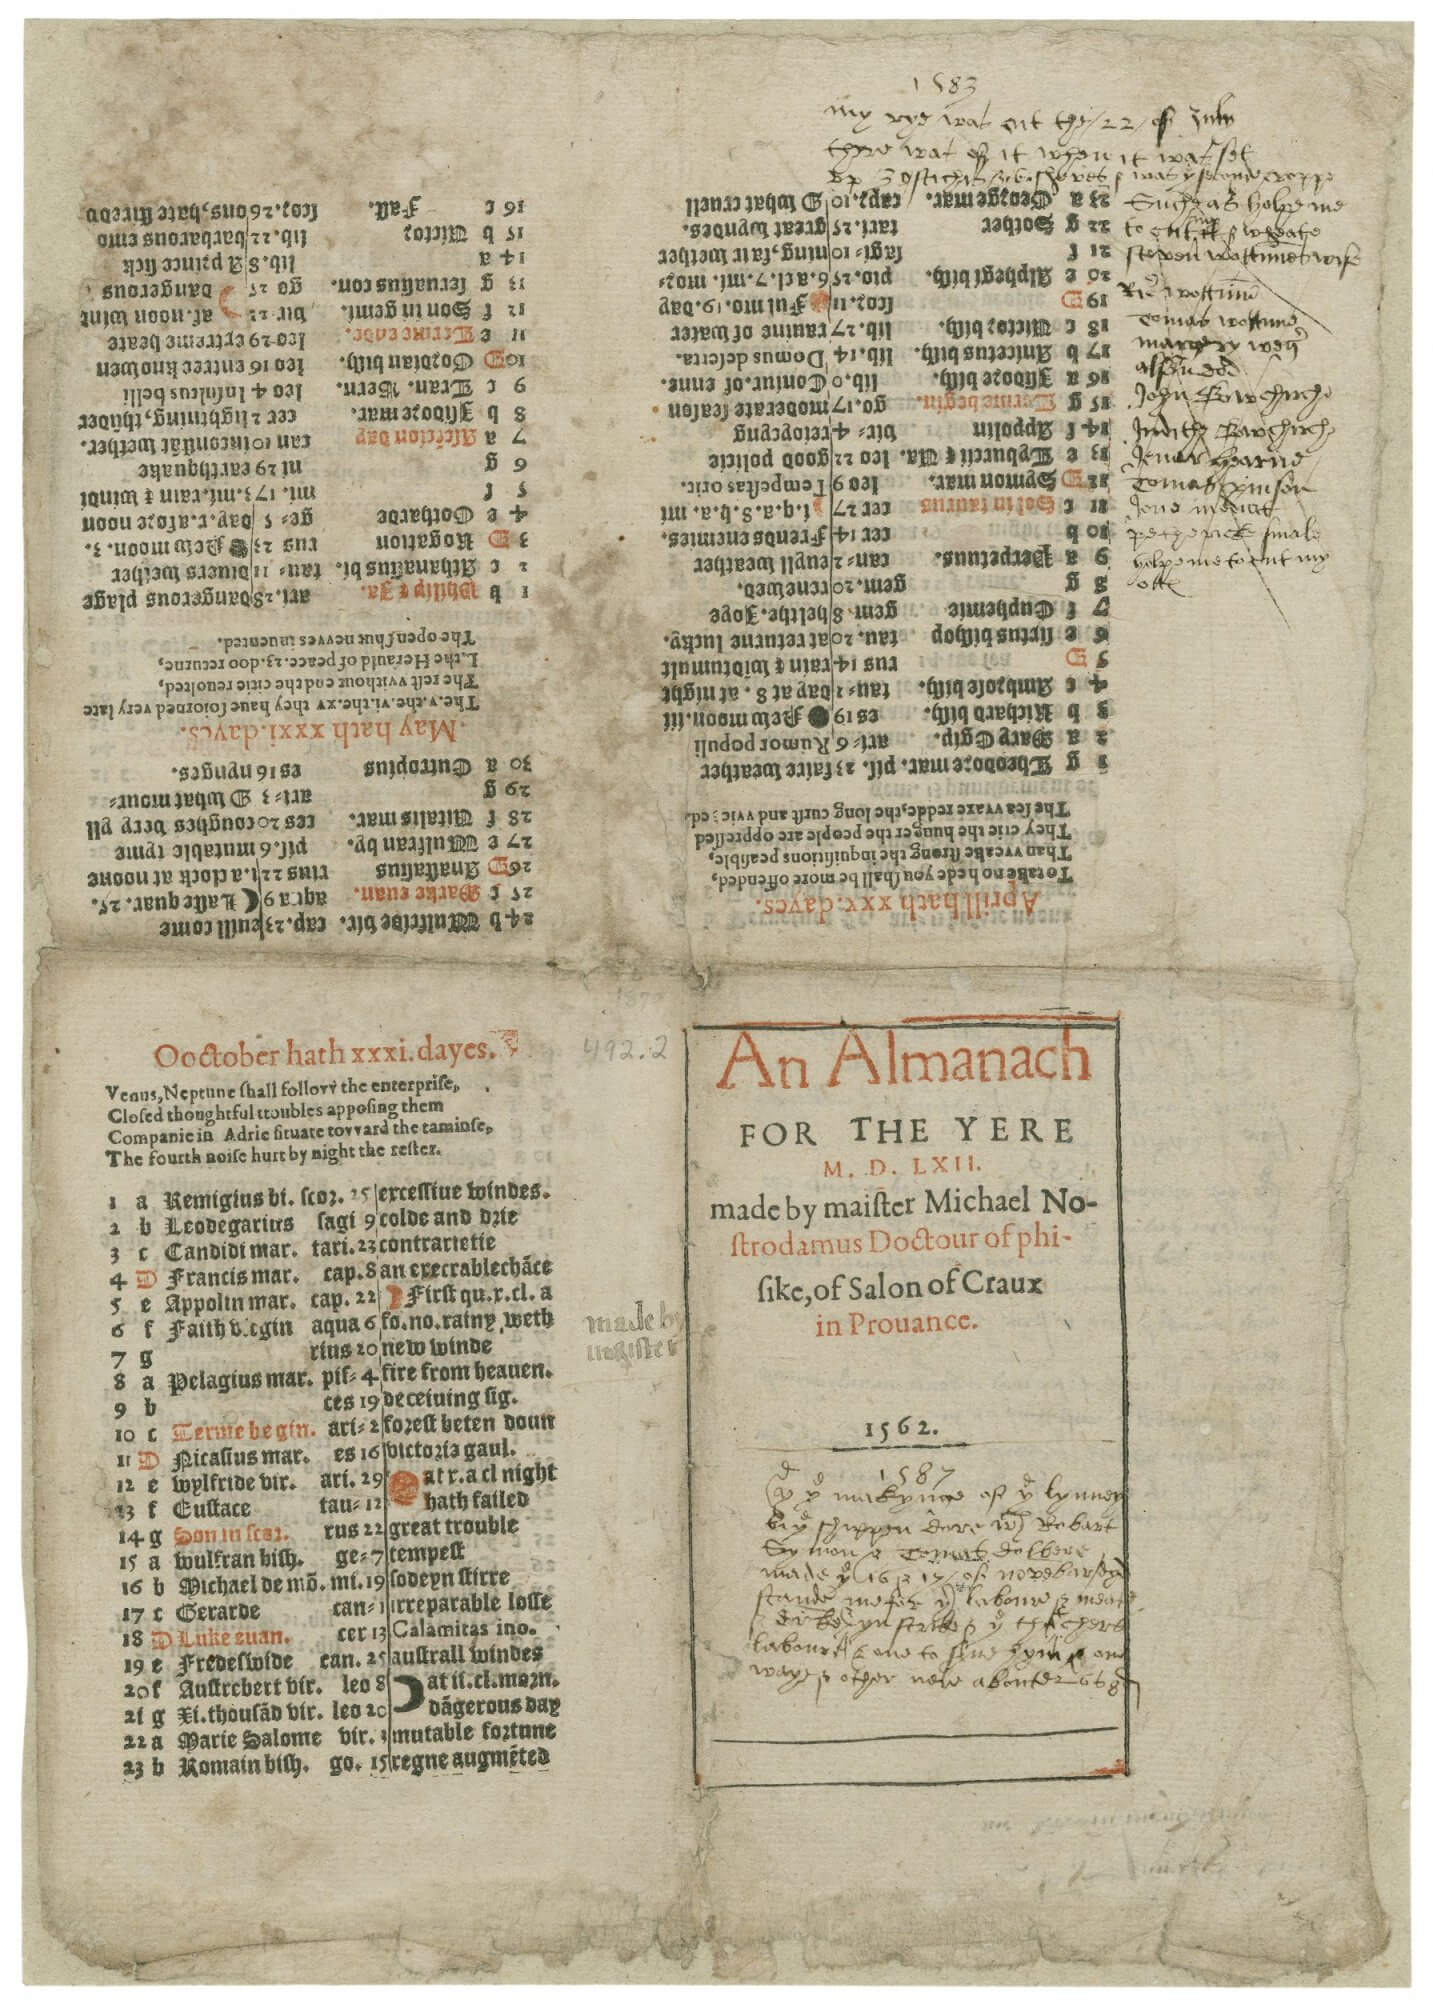 This almanac gives evidence of two things we don't often get to see: it barely survived and it's covered with manuscript notes from other dates. Although it's hard to discern from just this one image, this is one side of a half of a sheet that was imposed as an octavo (the other images from this sheet can be seen here). The sheet itself was torn along what is here the left edge, probably after it was weakened by years of folding. But even then, the almanac is incomplete, ending in October since the second sheet is now missing.